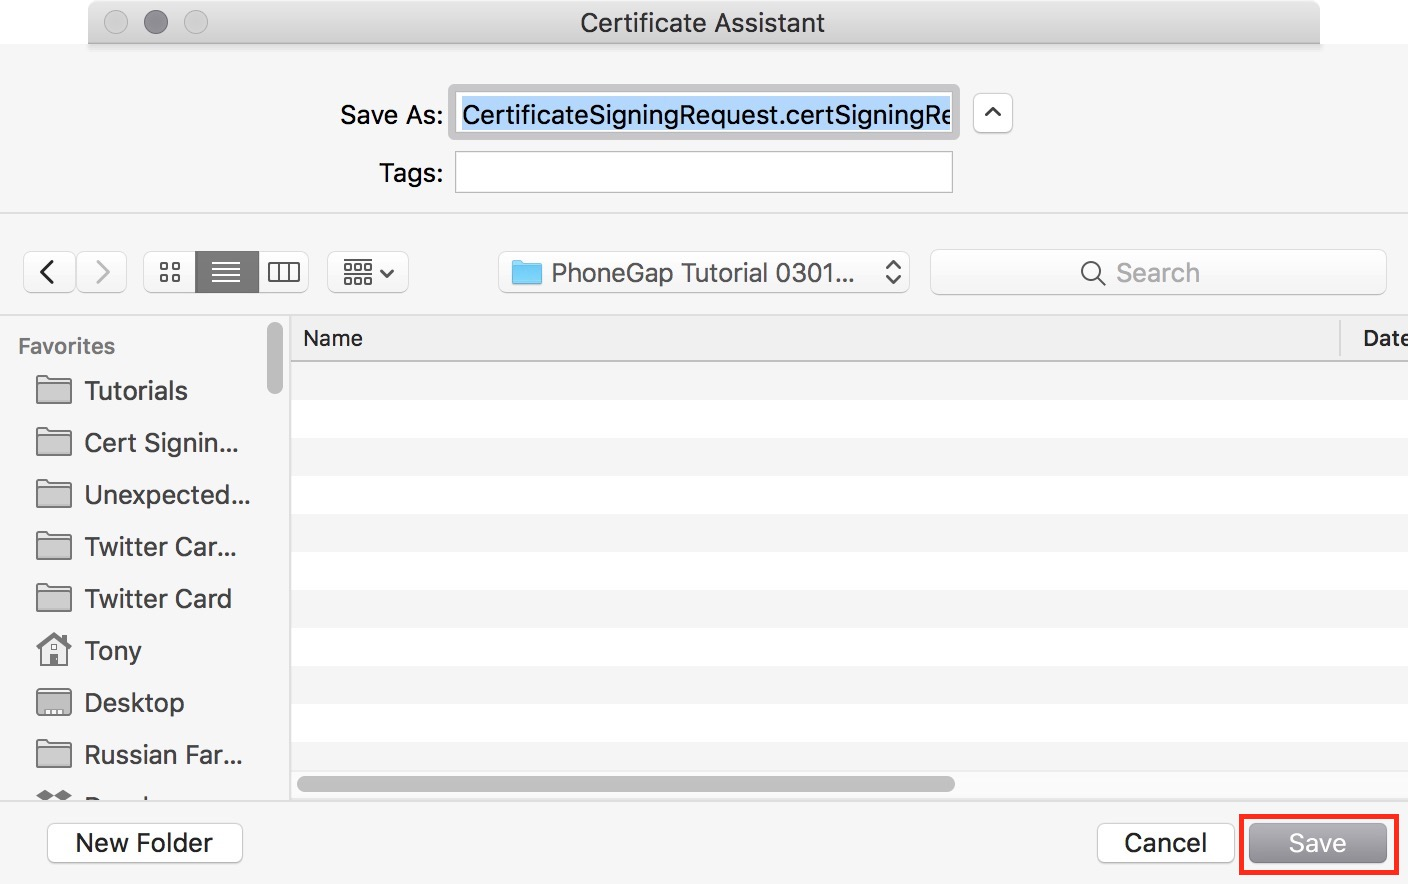 figure #13: Save the certificate to the new folder